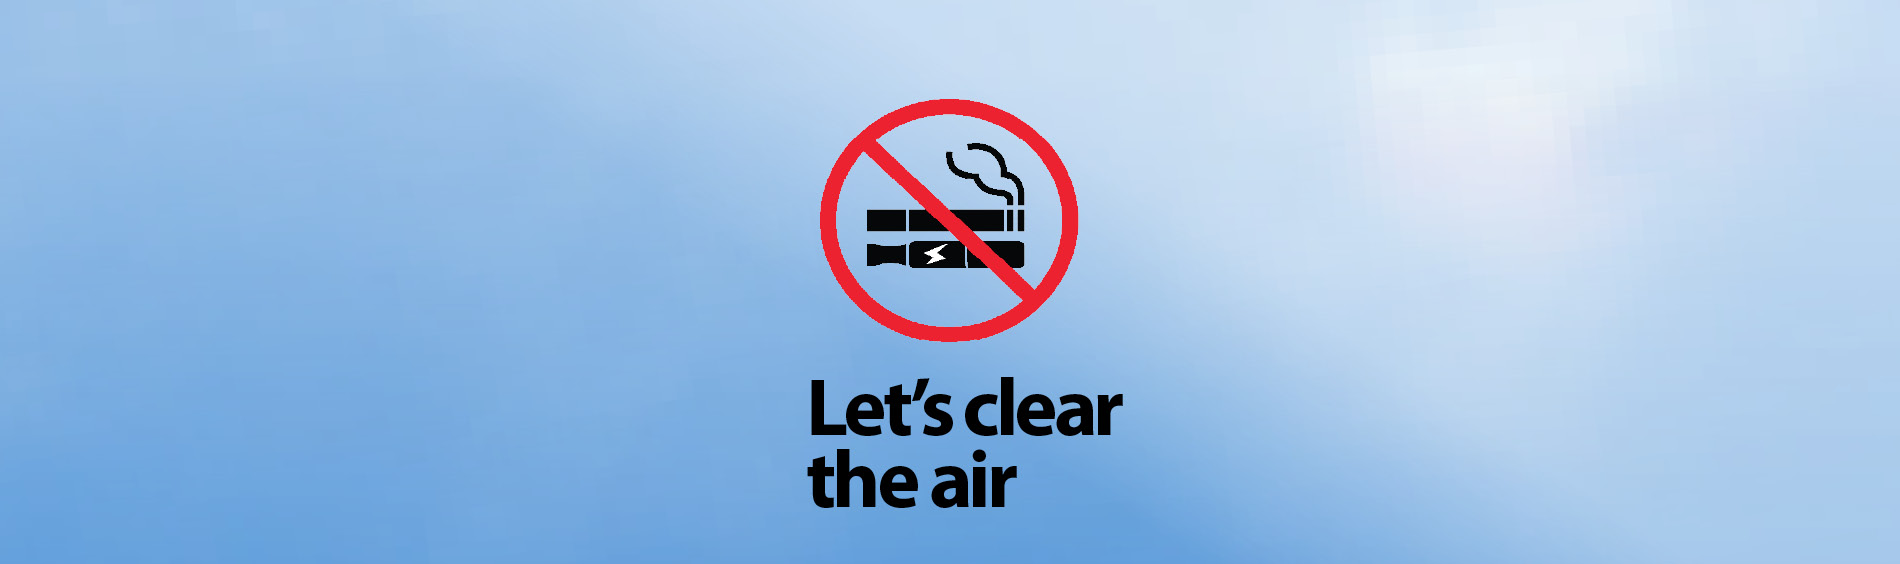 Lets Clear the air no smoking no vaping